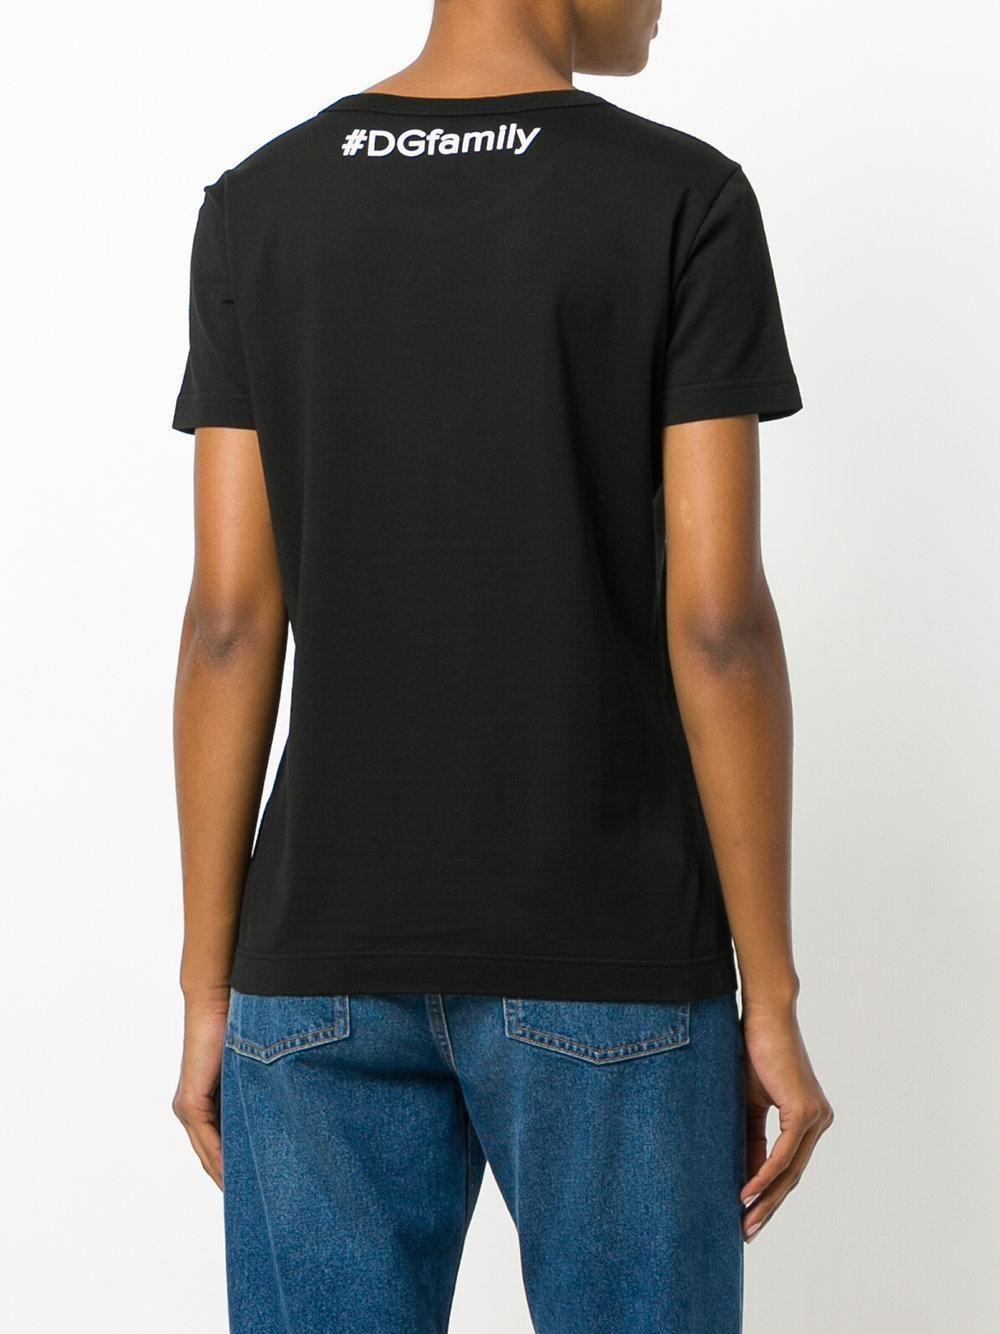 ae64a75e Dolce & Gabbana Vote For D&g Women T-shirt in Black - Lyst